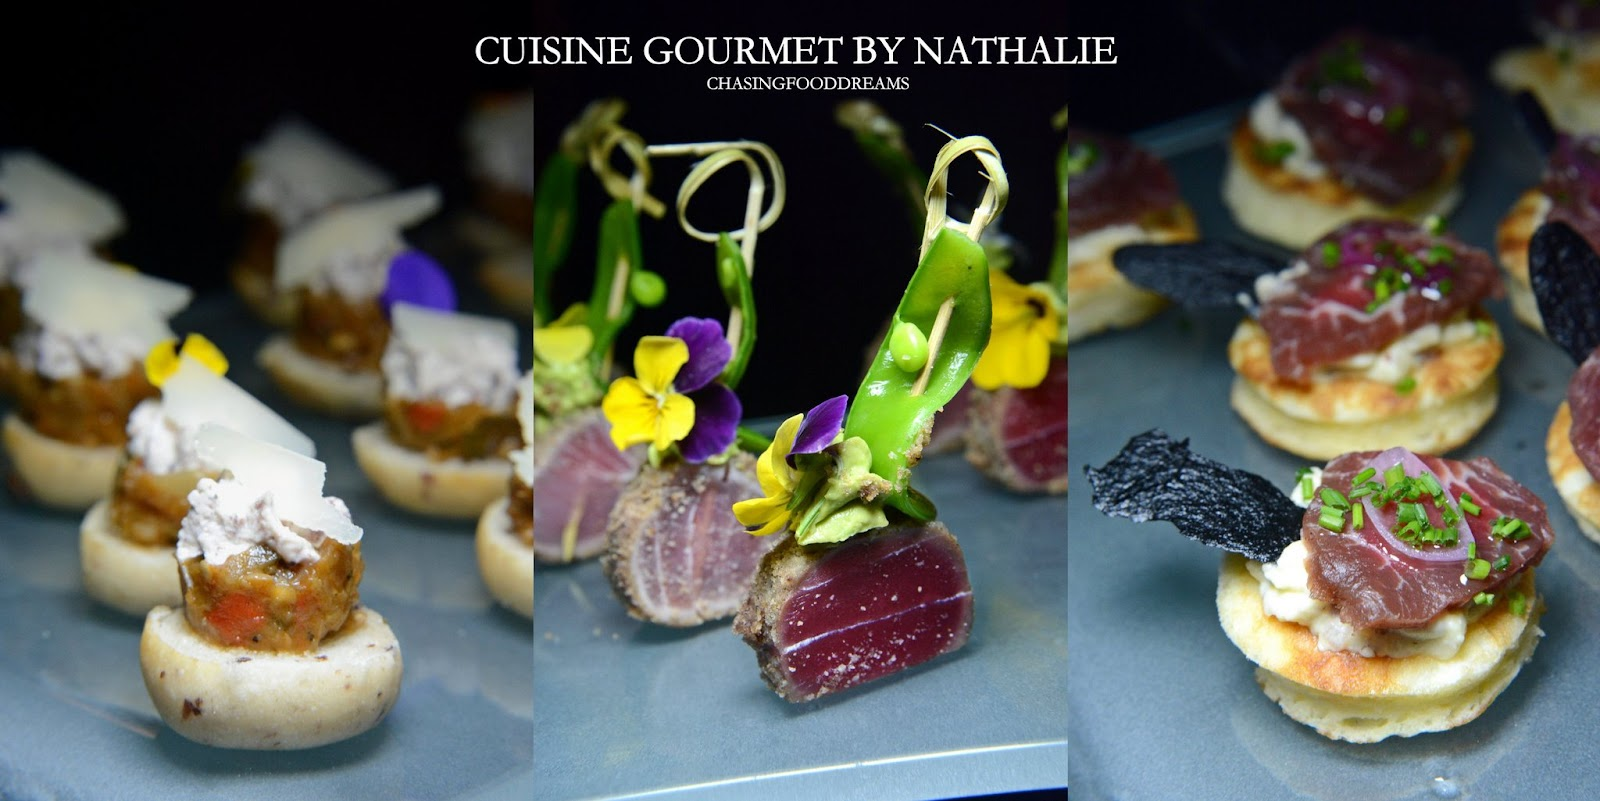 Chasing food dreams malaysia international gourmet for Cuisine gourmet by nathalie